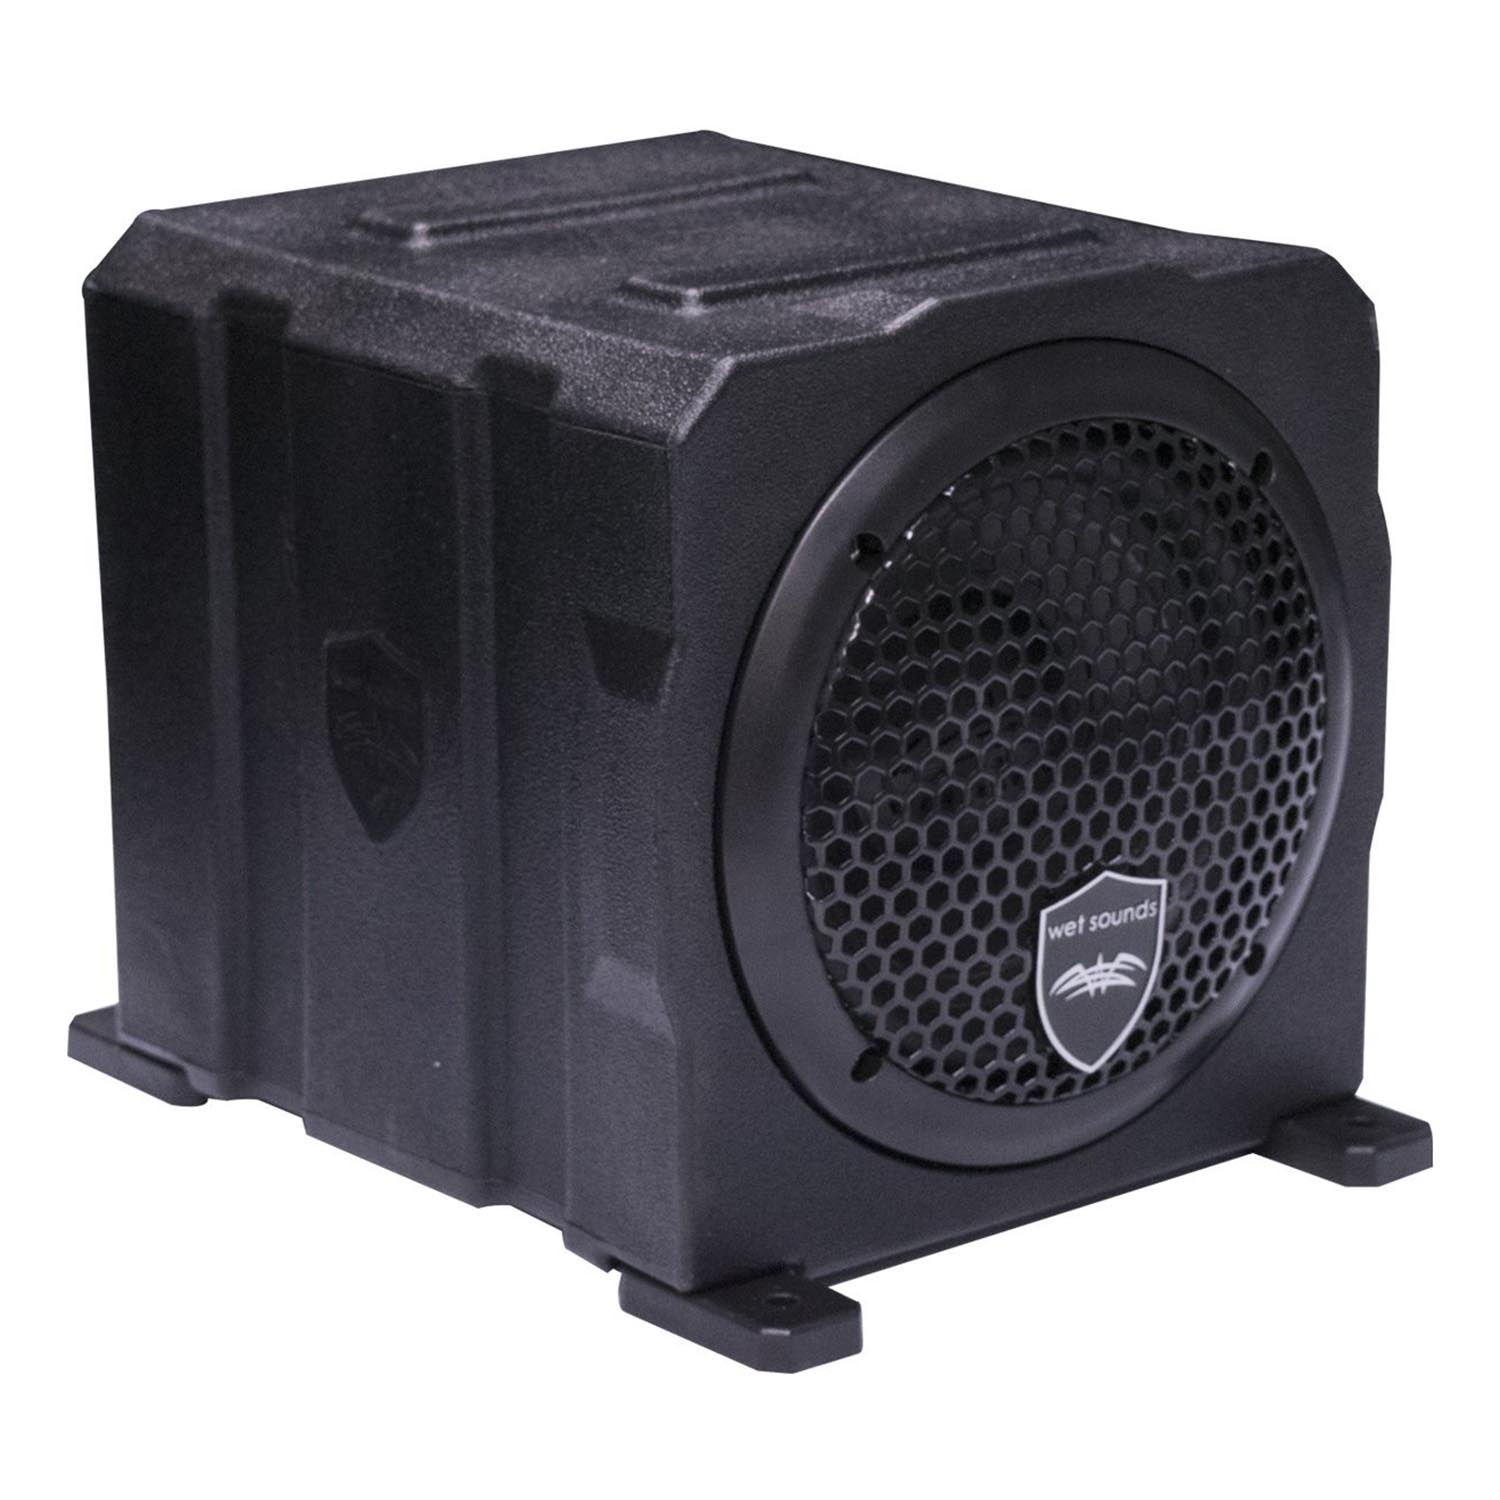 Wet Sounds Stealth AS-6 250W Active Marine Powered Sealed Subwoofer Enclosure